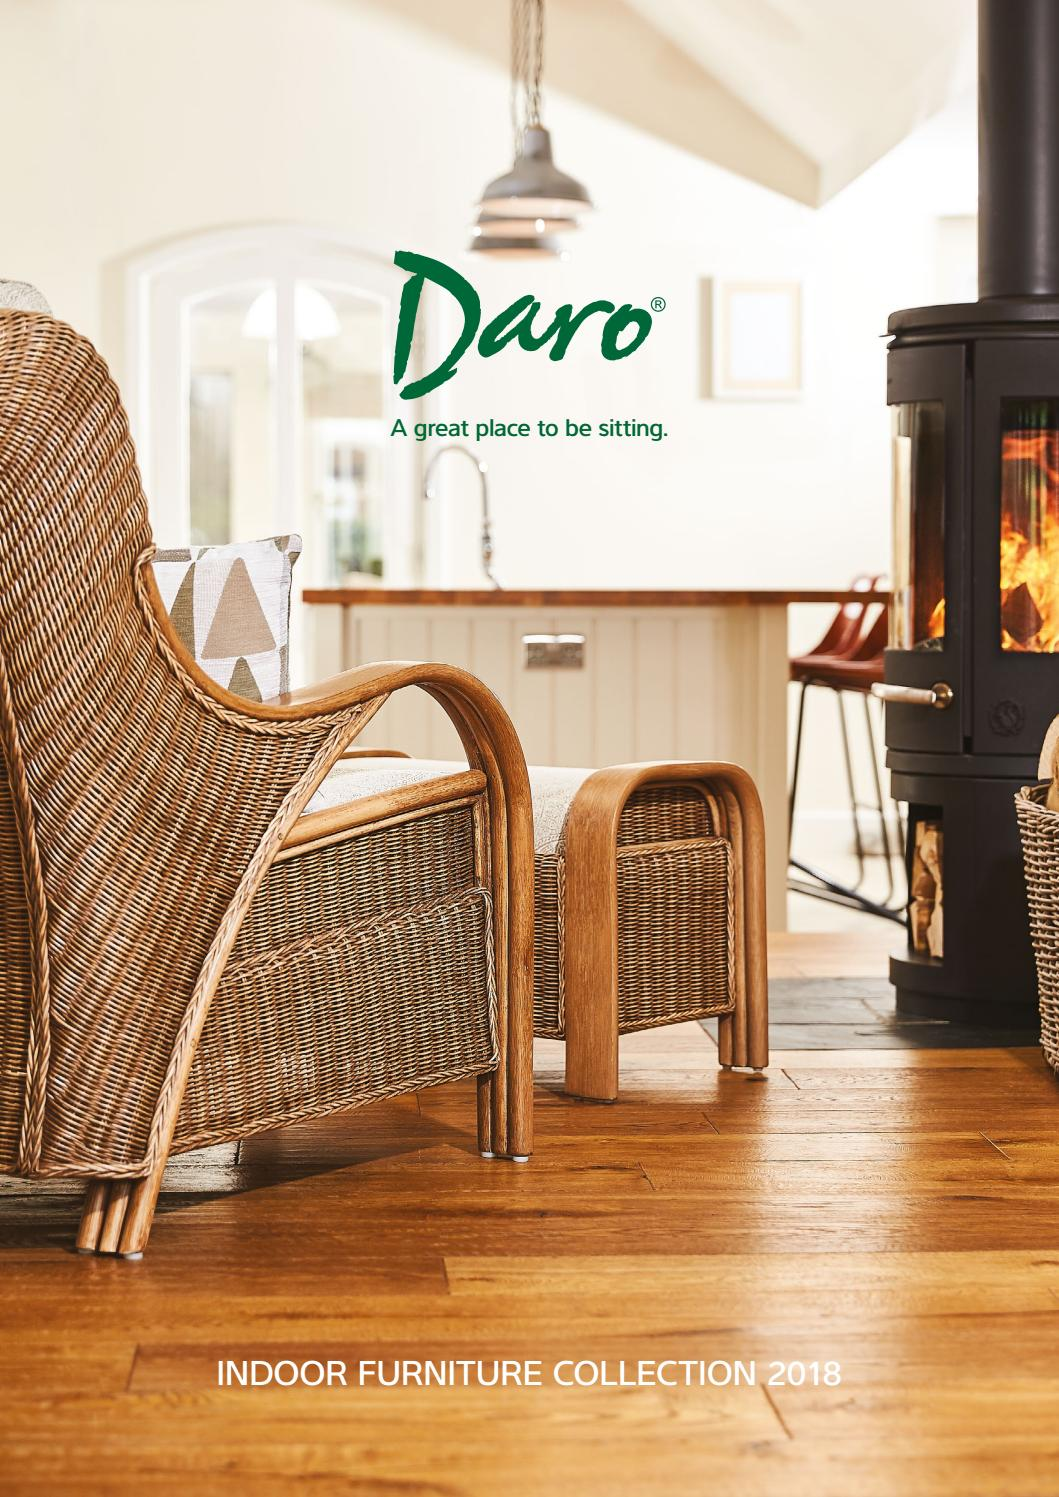 Daro indoor furniture collection 2018 by daro trading ltd issuu